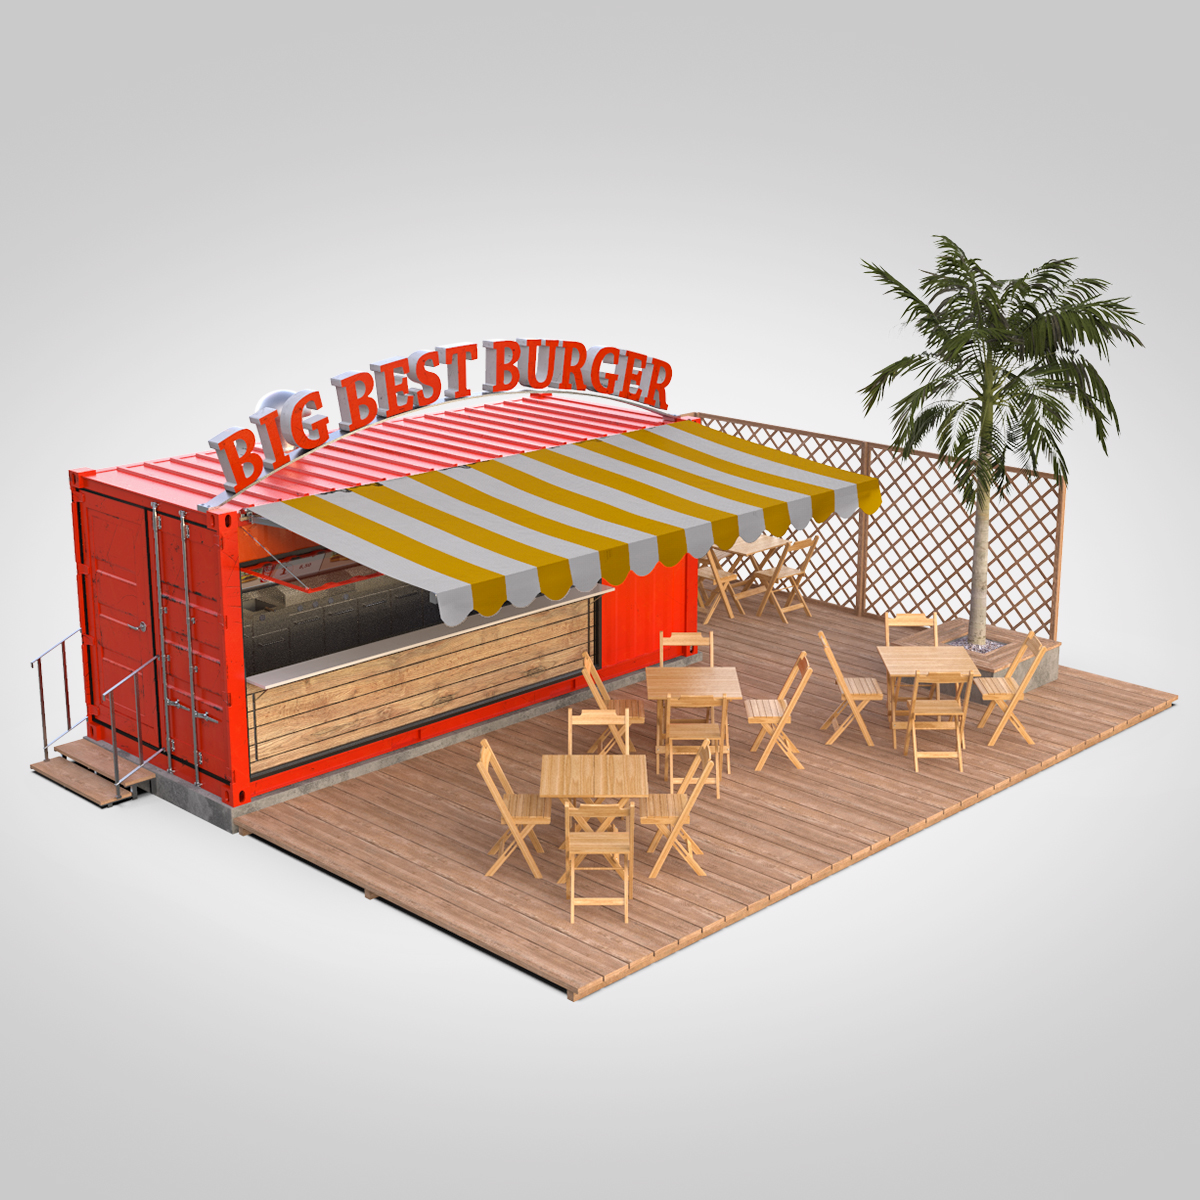 shipping container food stand 3d model max fbx ma mb texture obj 278561